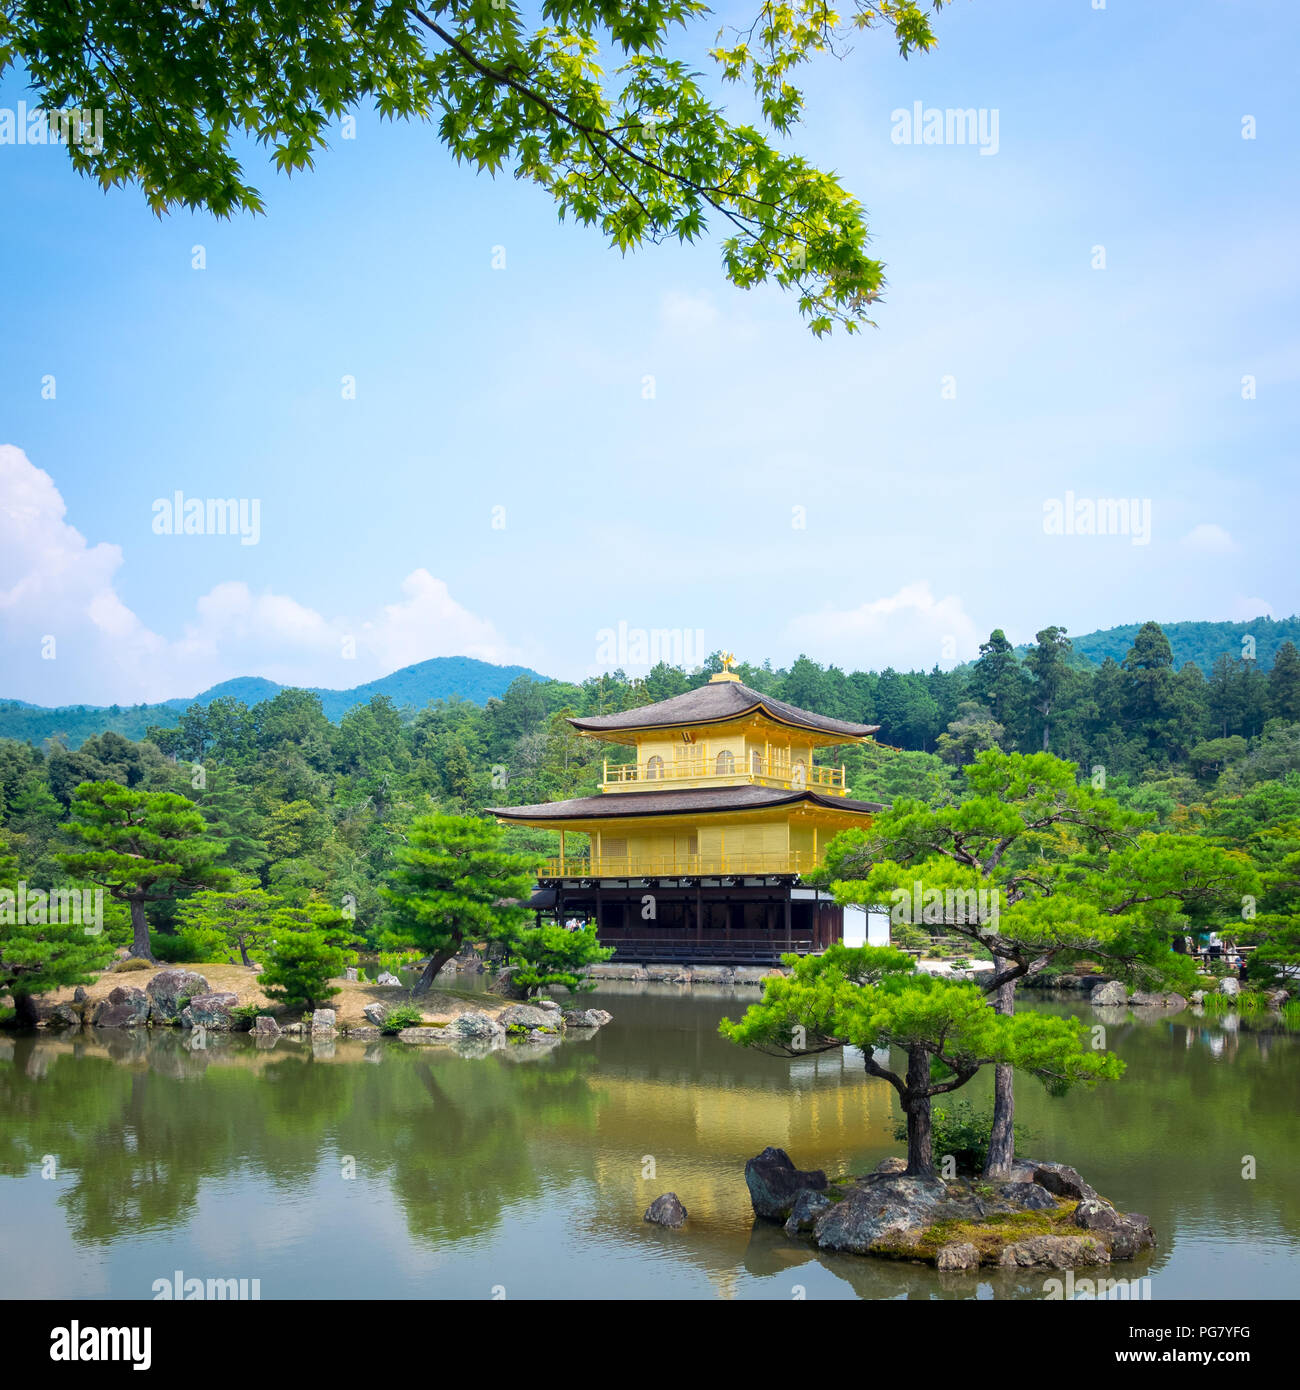 Kinkaku-ji (also known as Kinkakuji or Rokuon-ji), the Temple of the Golden Pavilion, is famous Zen Buddhist temple located in Kyoto, Japan. - Stock Image